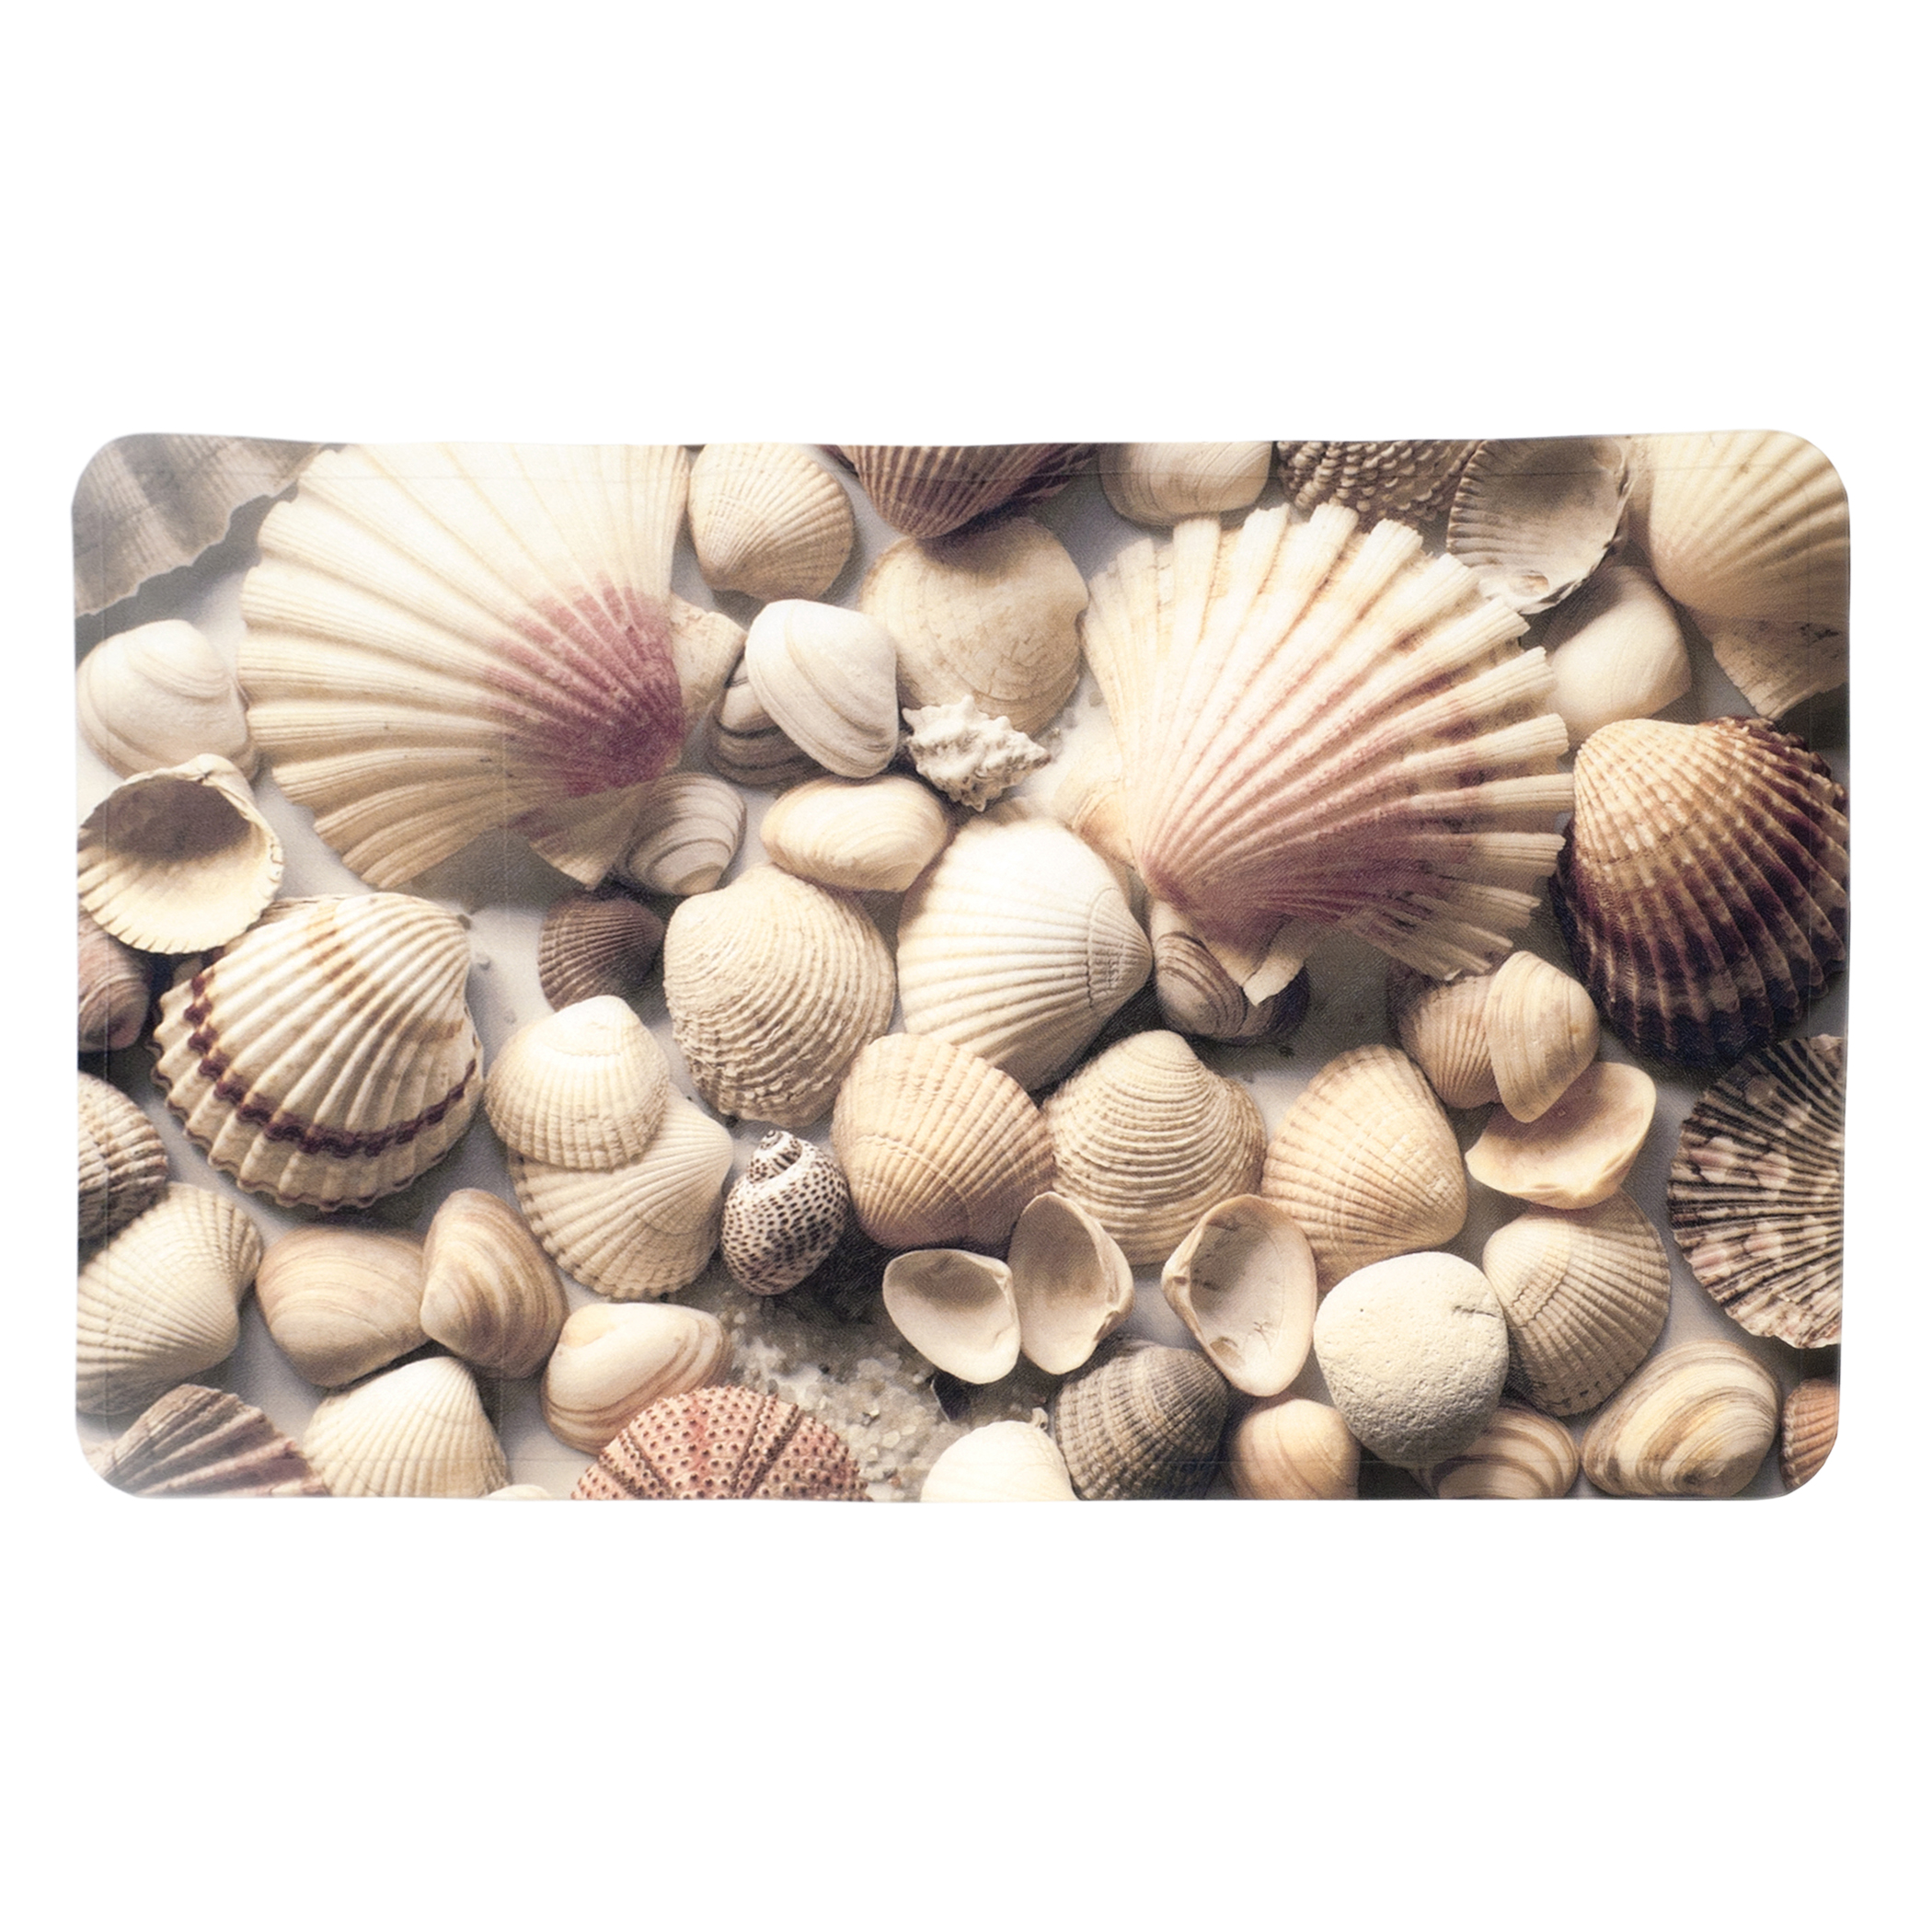 """Splash Home Sea Shells Fabric Printed PVC Bathtub Mats Non-Slip Mildew Resistant Extra Long Machine-Washable with 58 Strong Suction Cups, 16"""" x 27"""" Inch"""